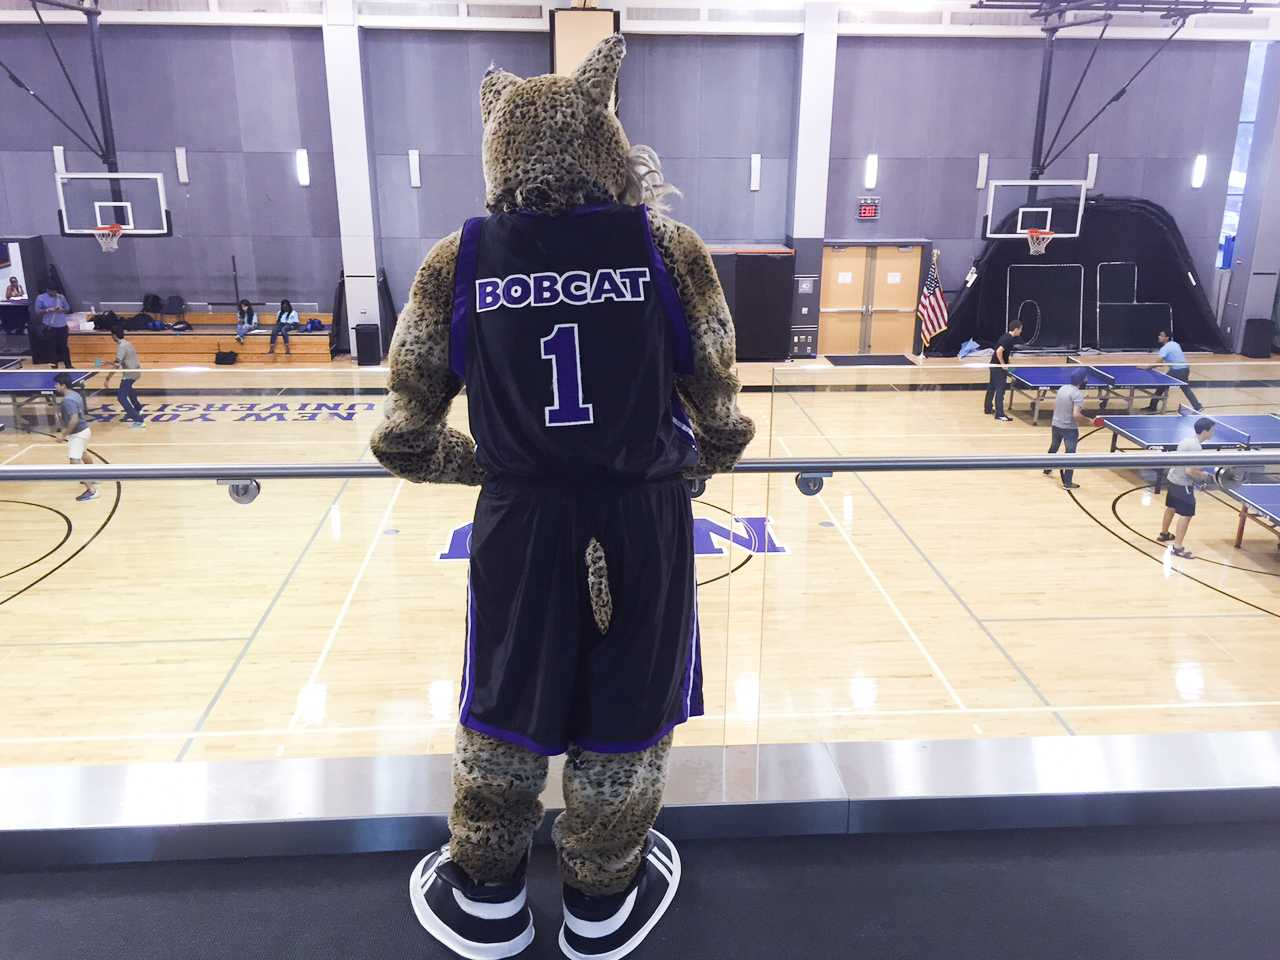 The NYU's mascot makes appearances on campus at special events, but calls the basketball games their primary home.